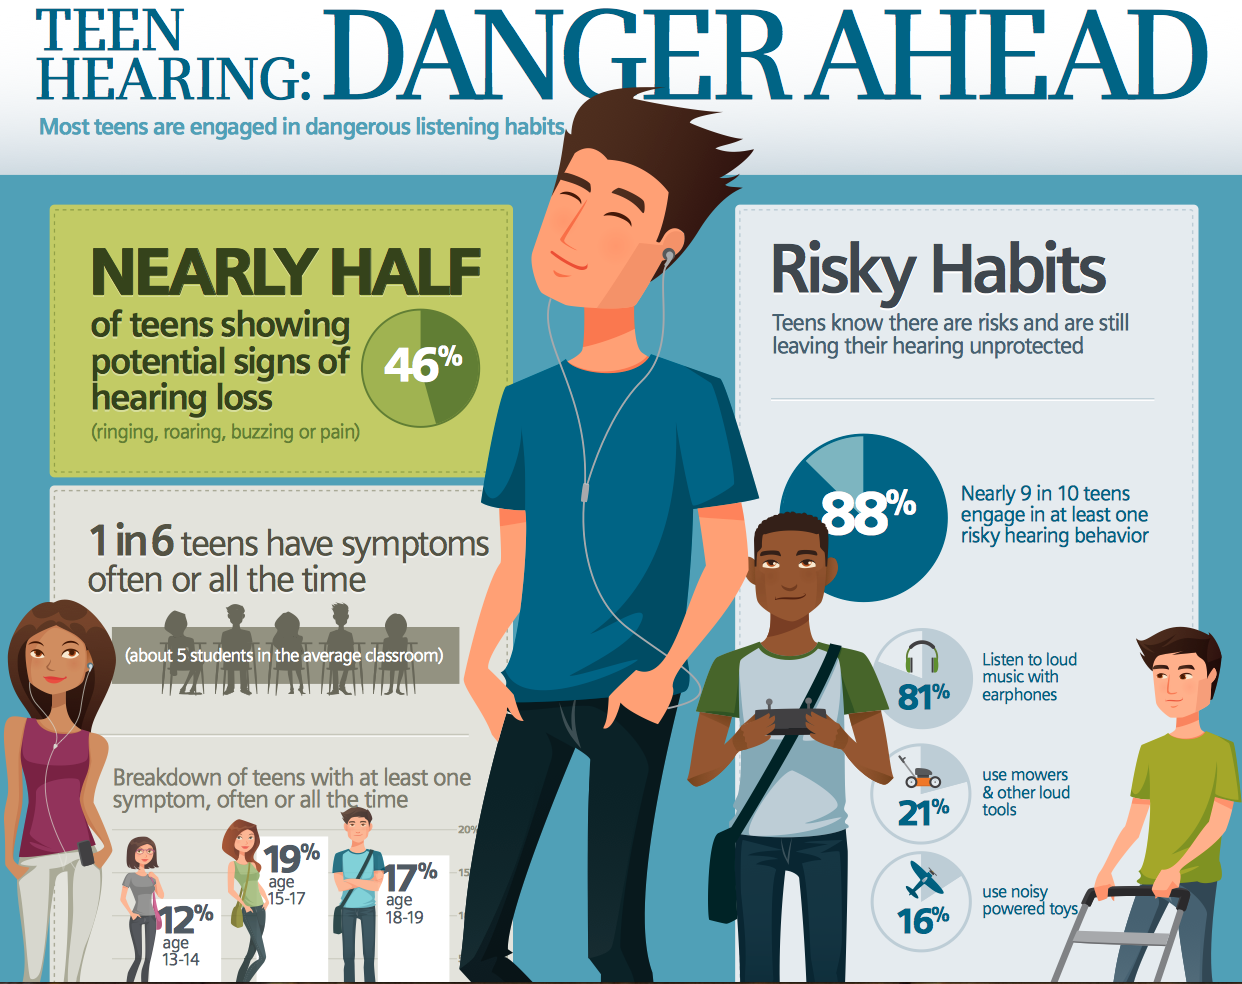 17 Best images about Hearing Conservation on Pinterest | Horton ...